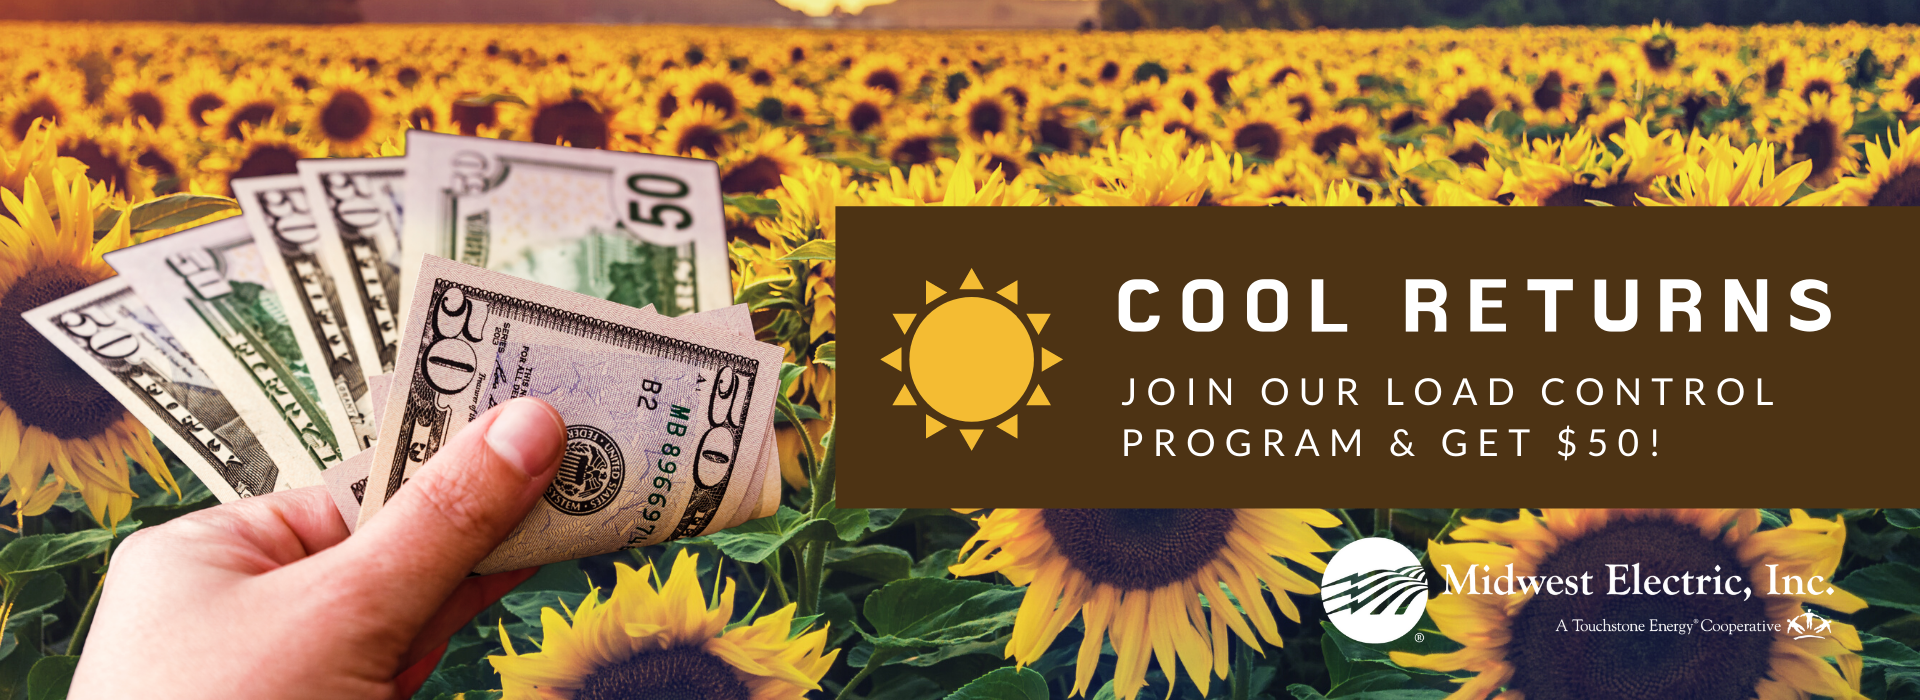 Sign up for Cool Returns to get $50